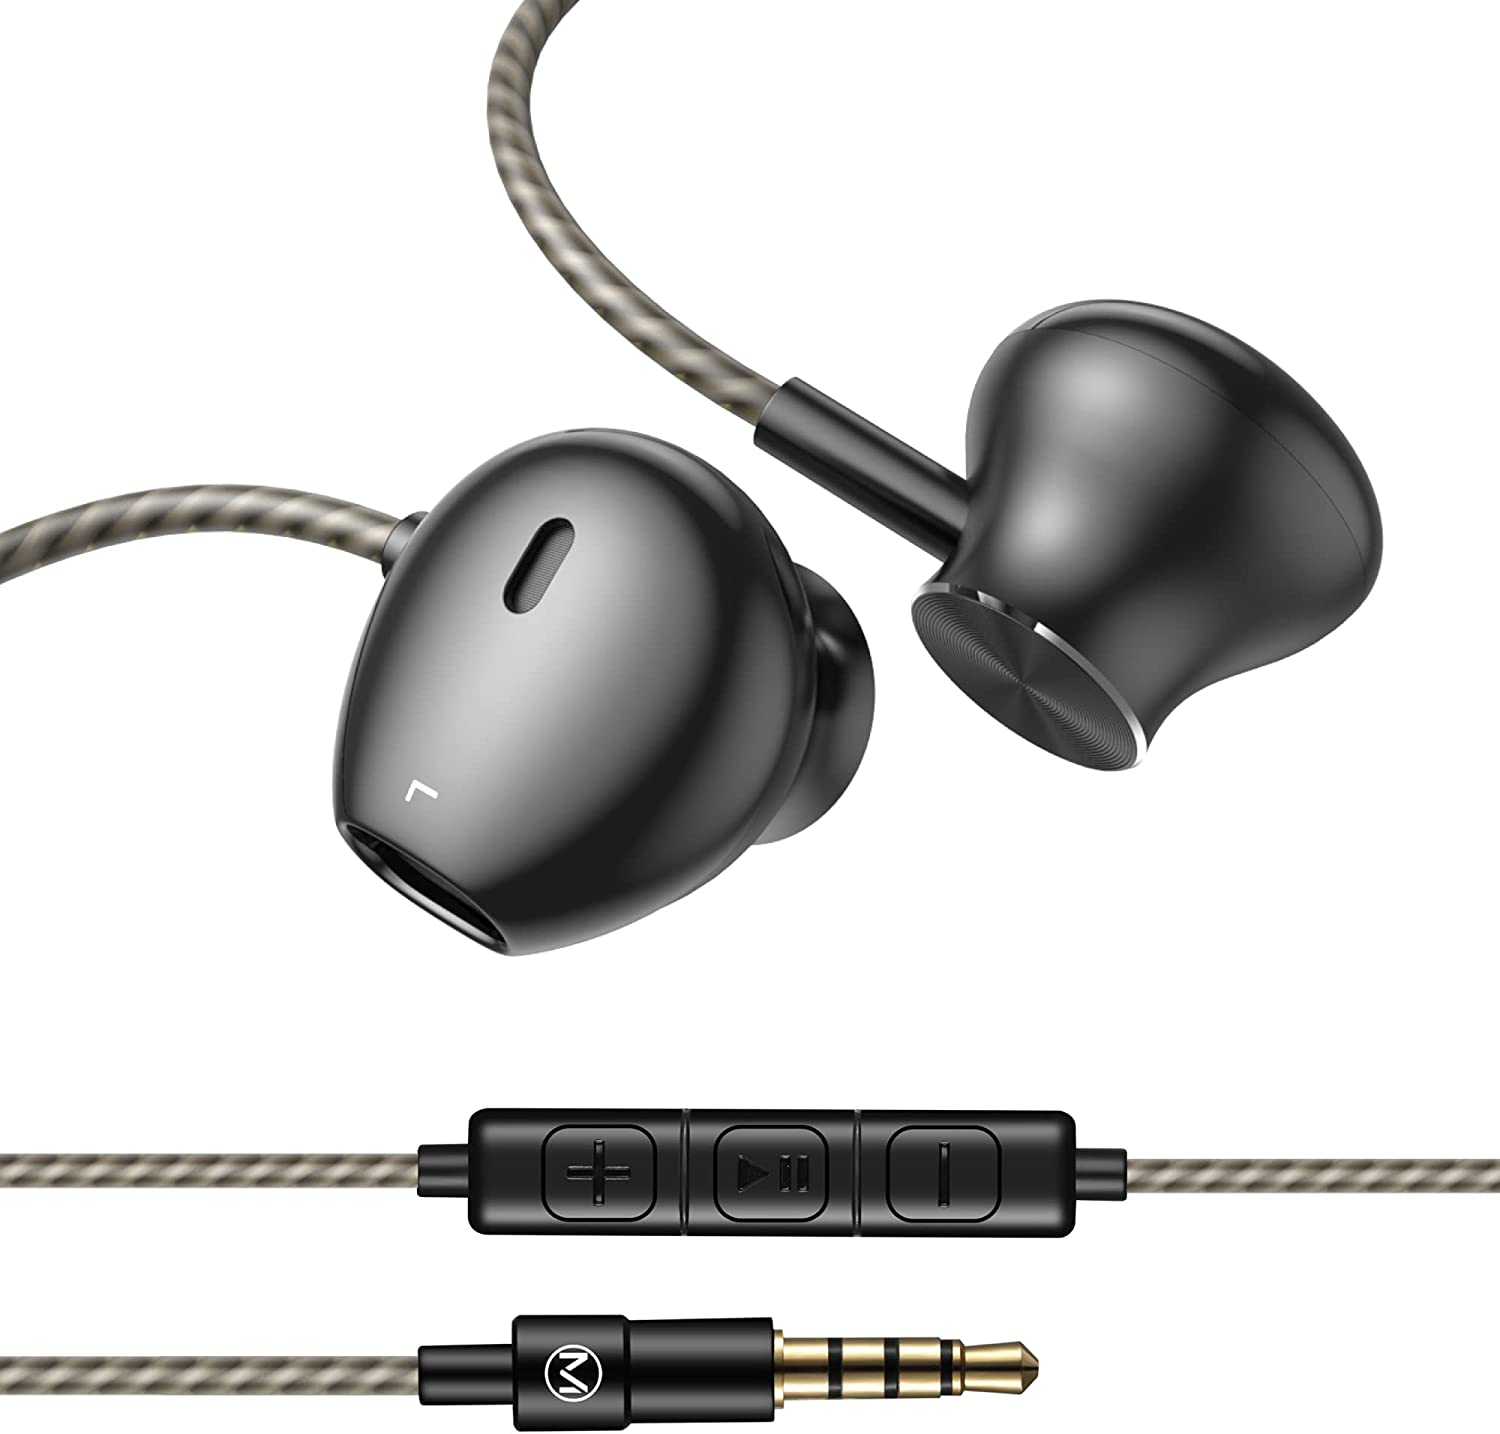 Wired Earbuds with Mic Tangle Free Cord 3.5mm Jack Metal Headphones with Volume Control Extra Bass Noise Cancelling Earphones for Gaming Music Video Apple iPhone iPad Laptop Computer PC Black